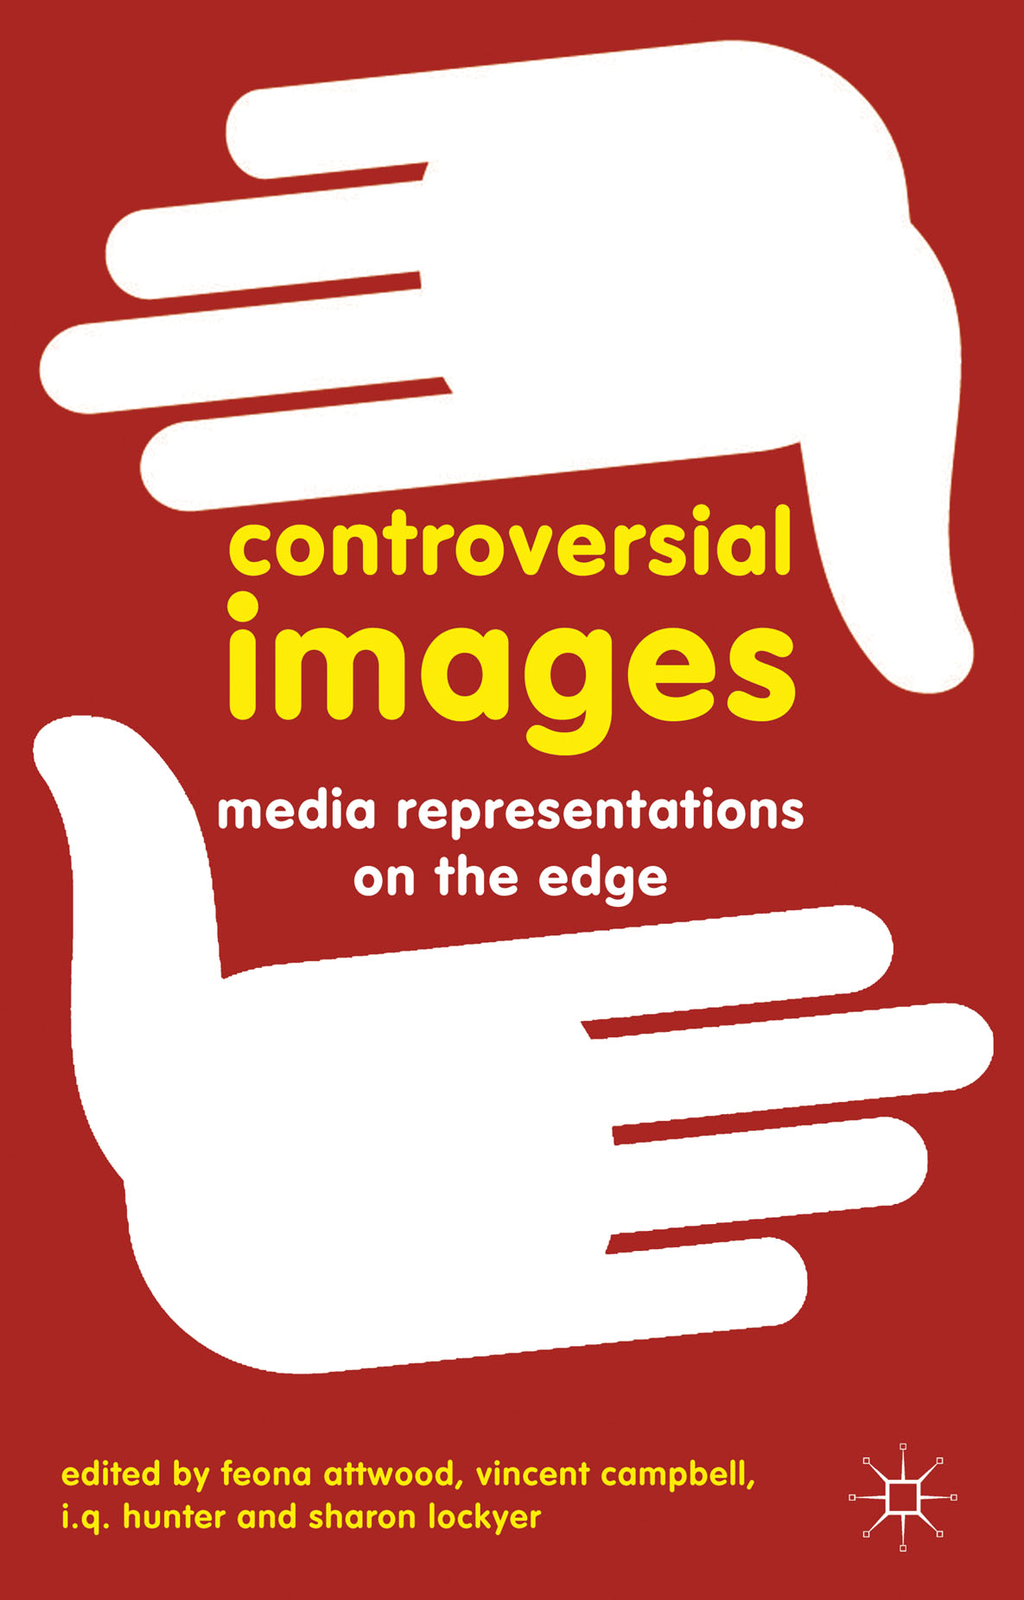 Controversial Images Media Representations on the Edge